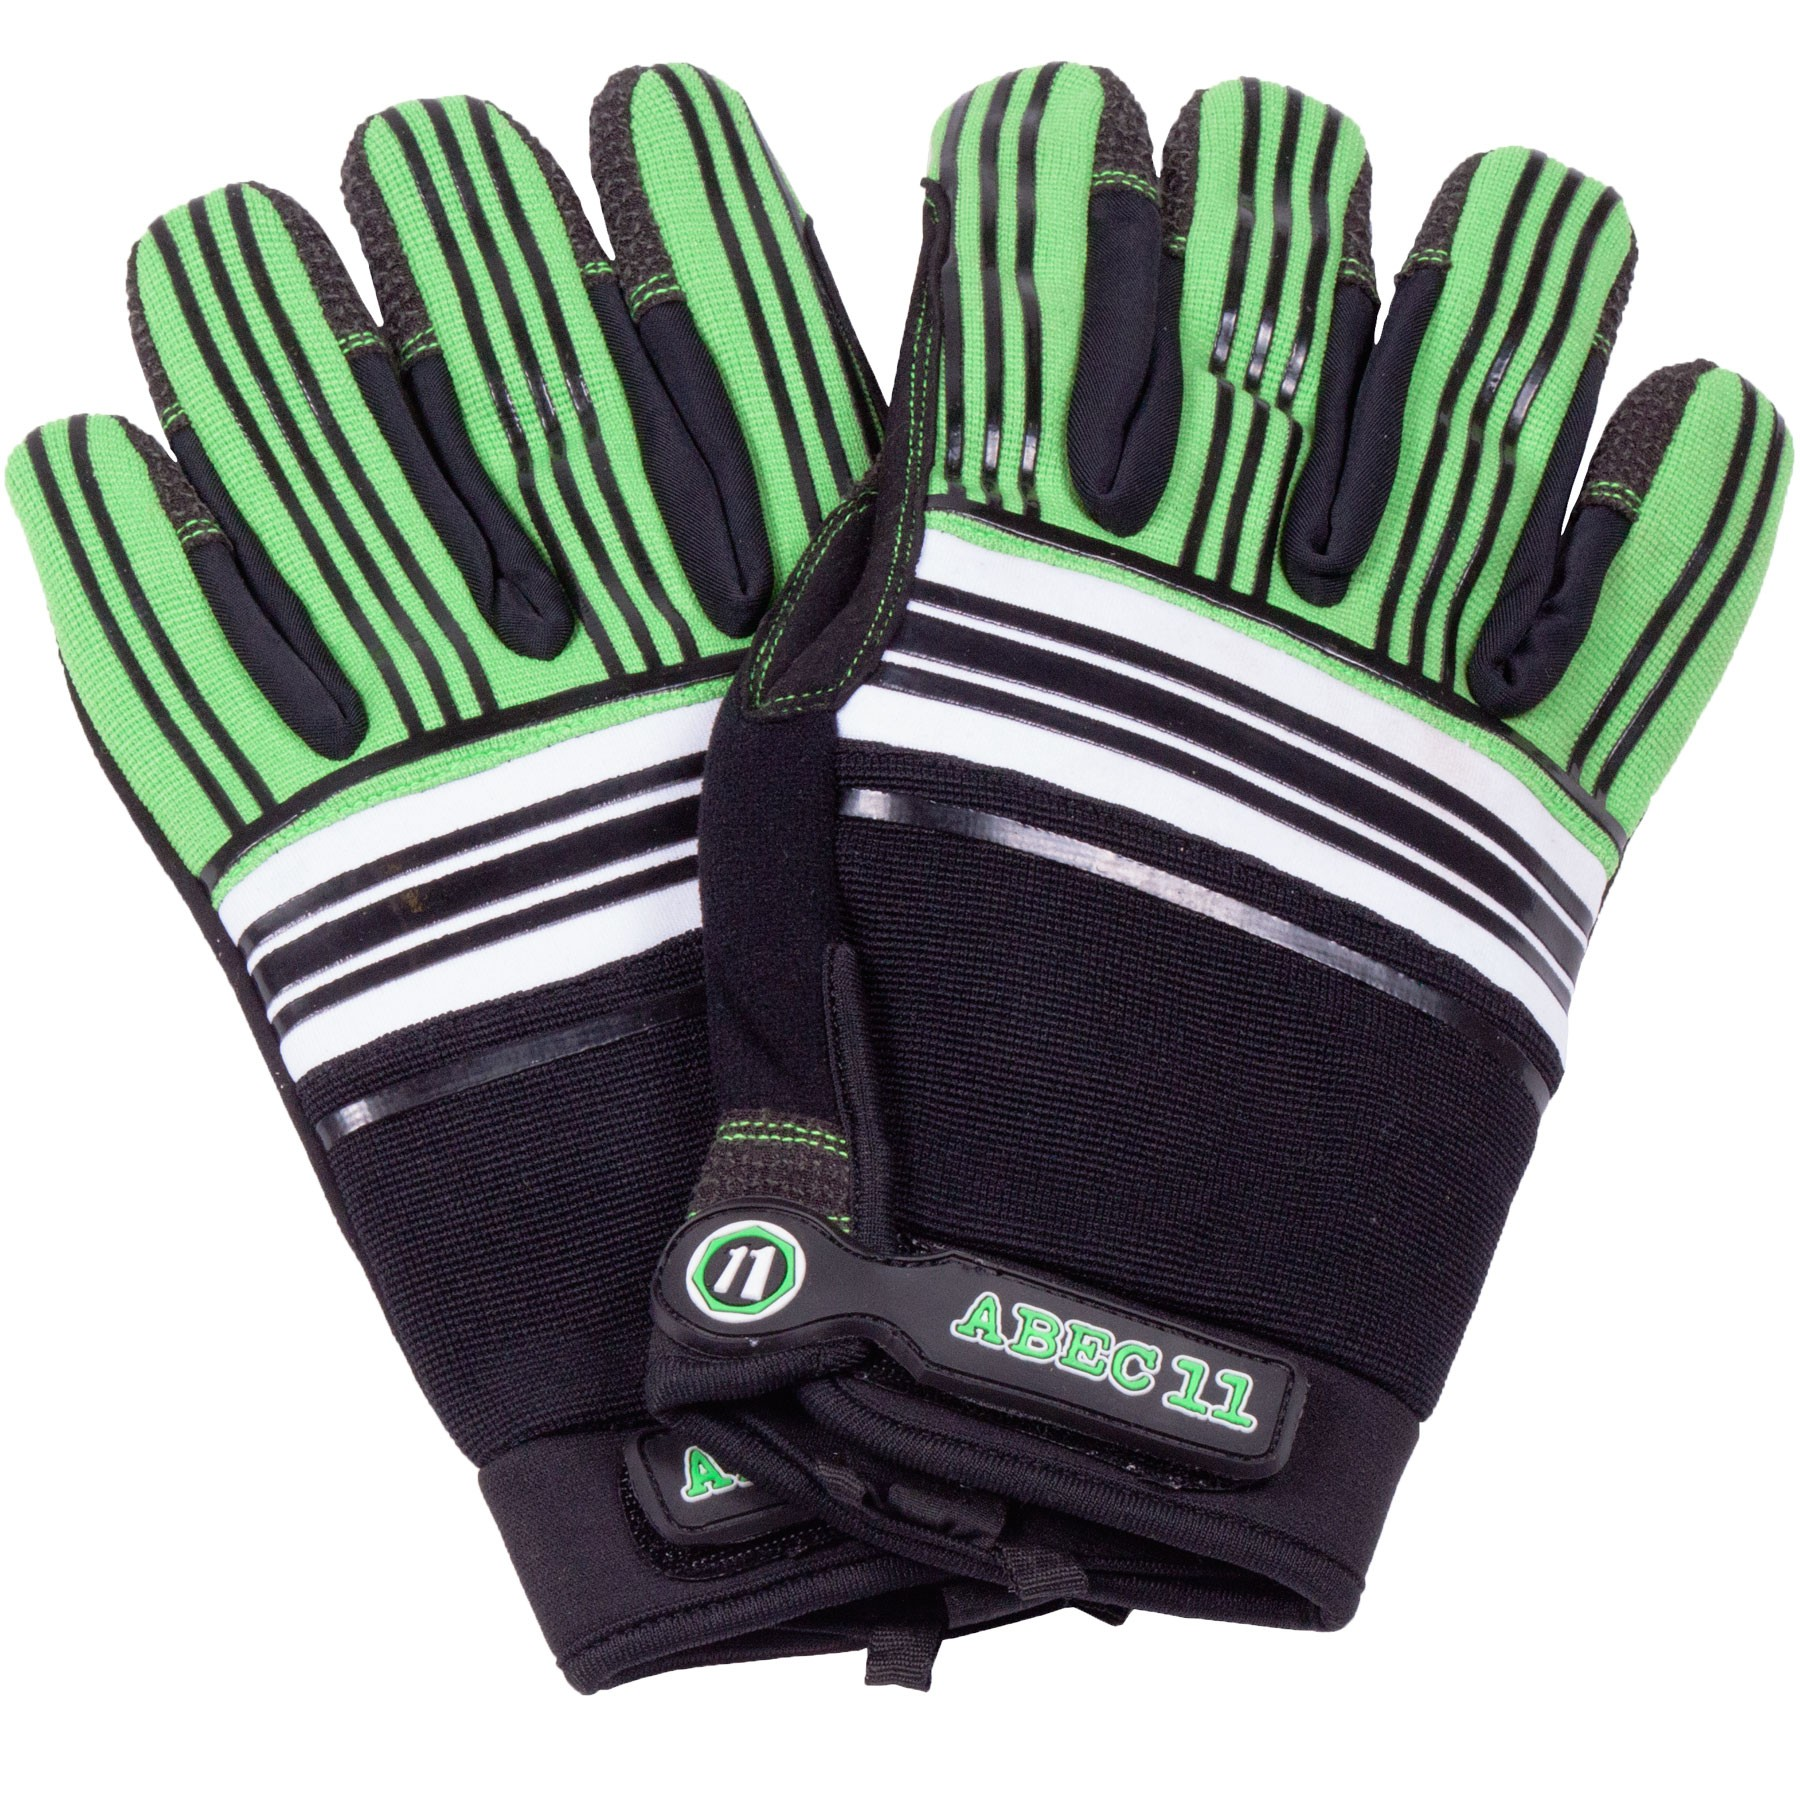 Abec 11 Slide Gloves - Green / Black